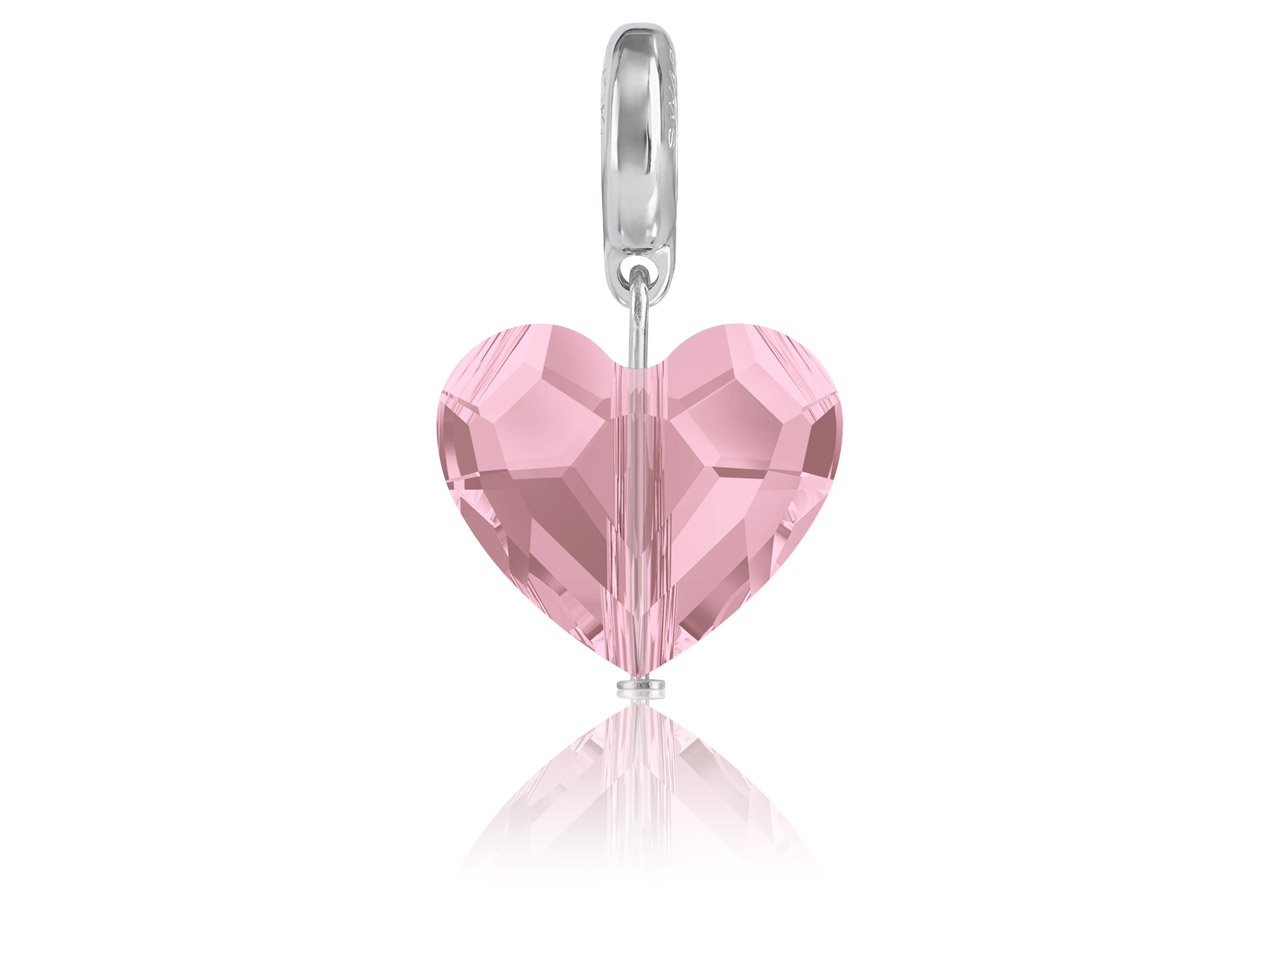 Swarovski Becharmed Crystal Love   Charm, 12mm, Crystal Antique Pink